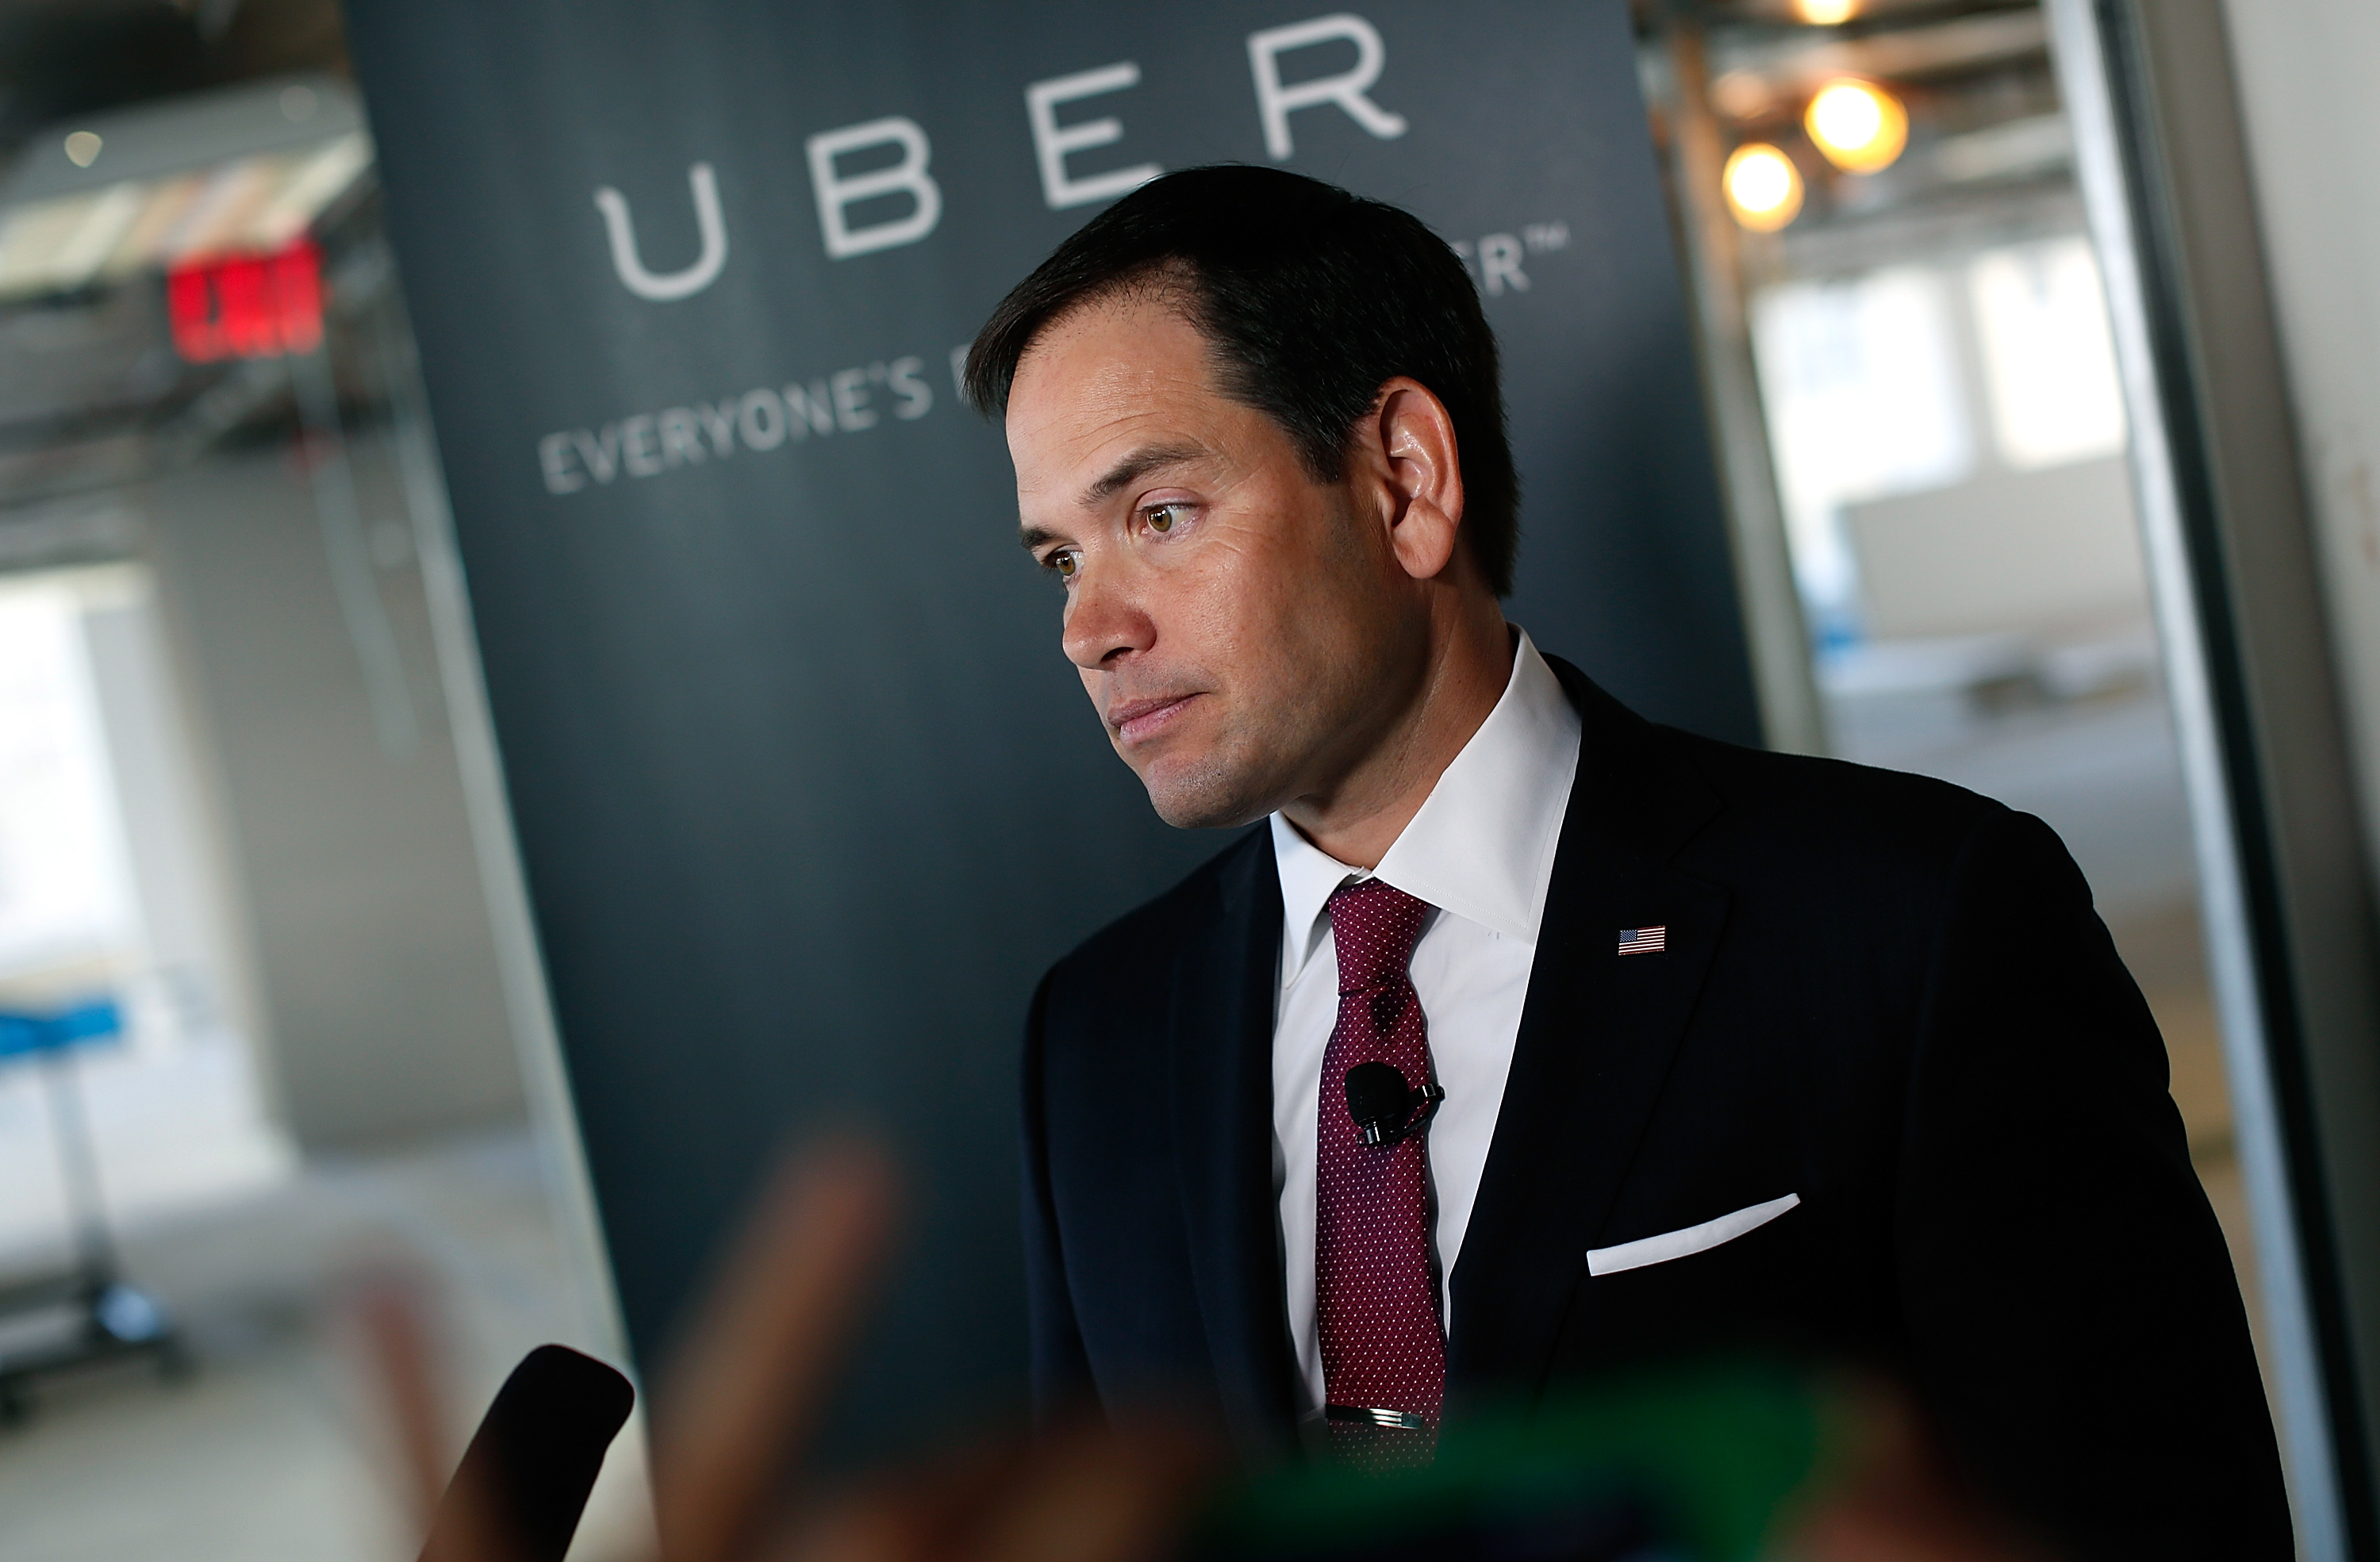 Why did Marco Rubio, a Florida senator with possible presidential ambitions, visit the Uber's Washington HQ last month? I don't know, probably 'cause of puppies, I guess. (Photo: Getty Images)